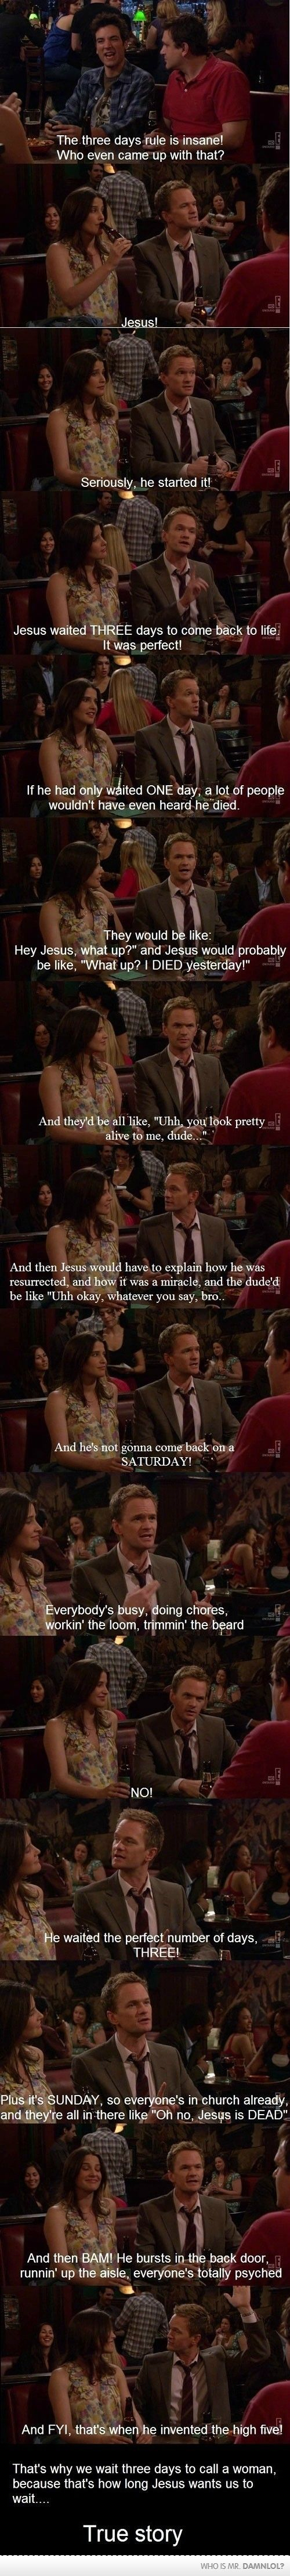 3 day rule gotta love Barney! Love this show!